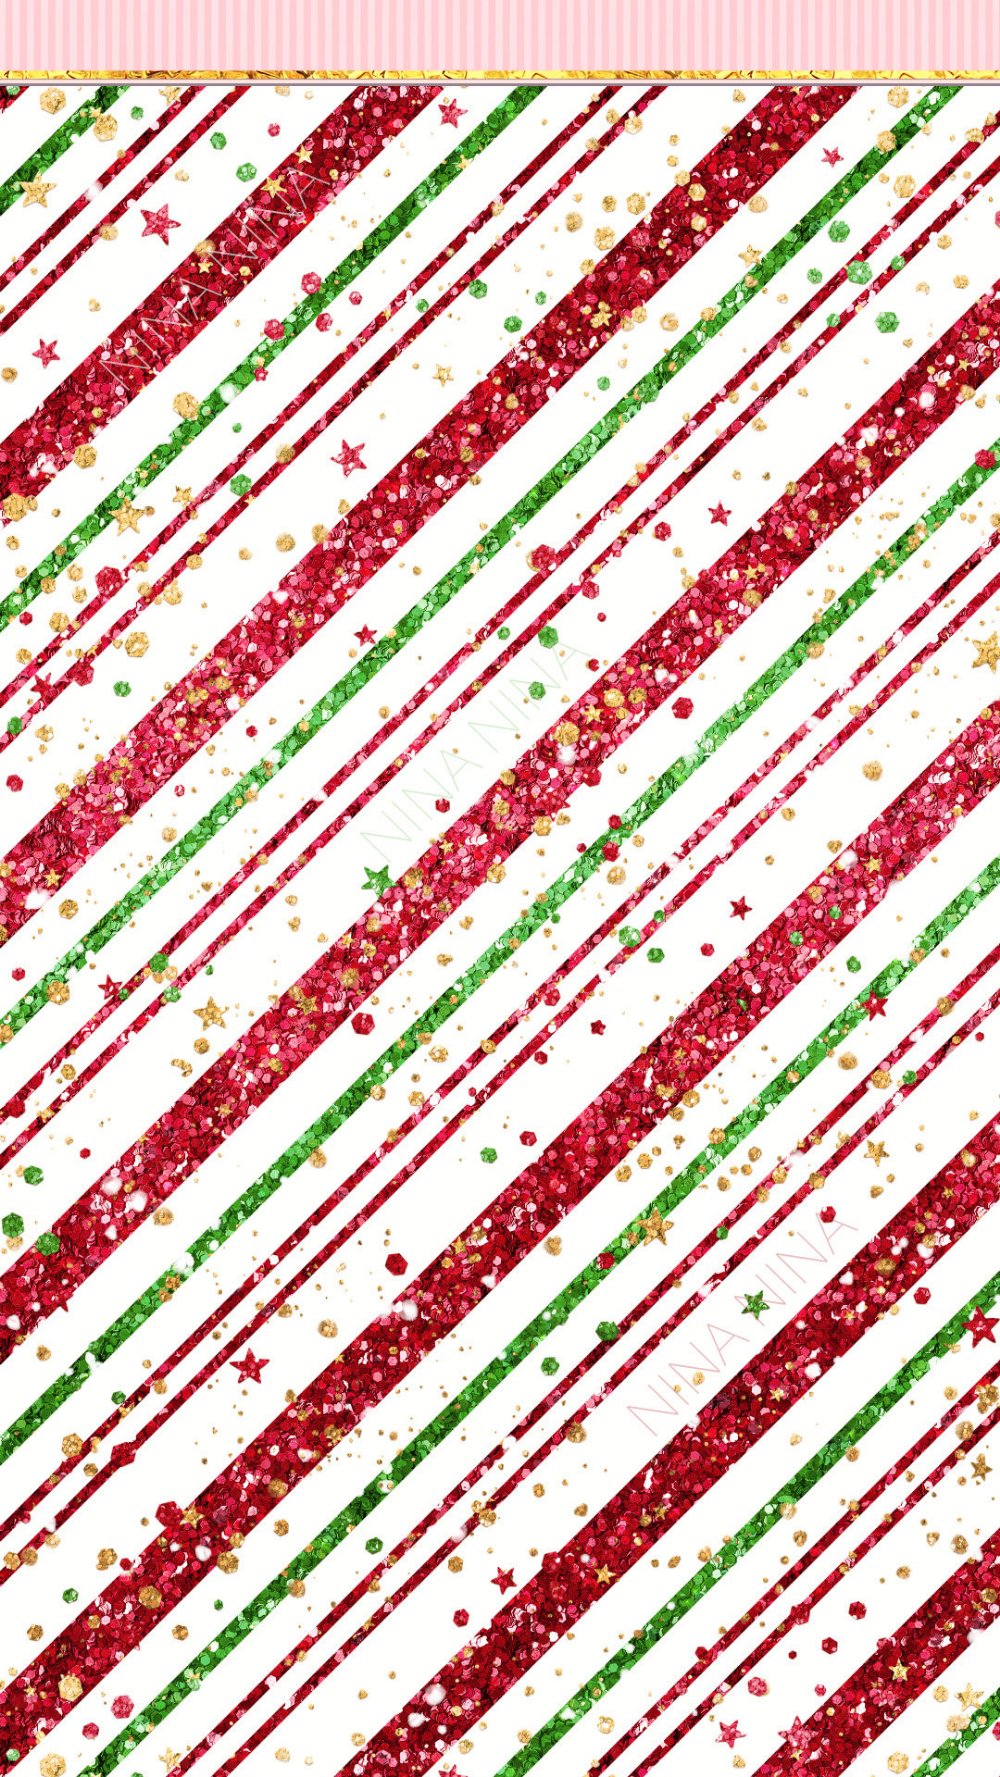 Christmas Gingerbread Digital Paper Pack Basic Christmas Seamless Patterns Glitter Stars Candy Cane Stripes Cute Xmas Fabric Red Gold Wallpaper Iphone Christmas Christmas Phone Wallpaper Cute Christmas Wallpaper